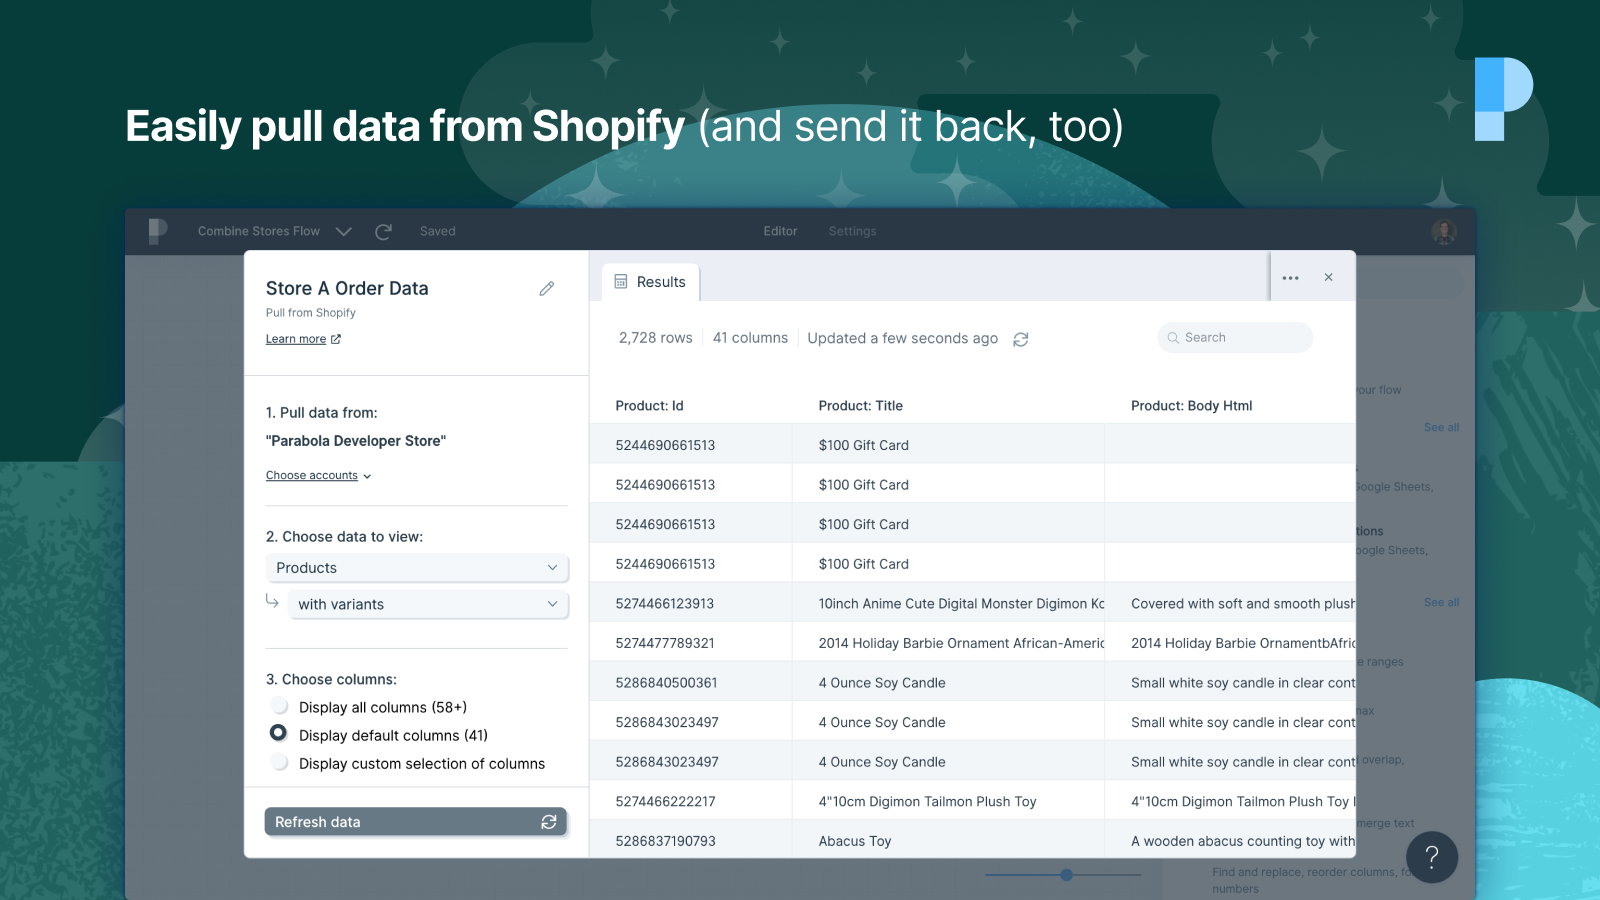 Easily pull data from Shopify (and send it back, too)